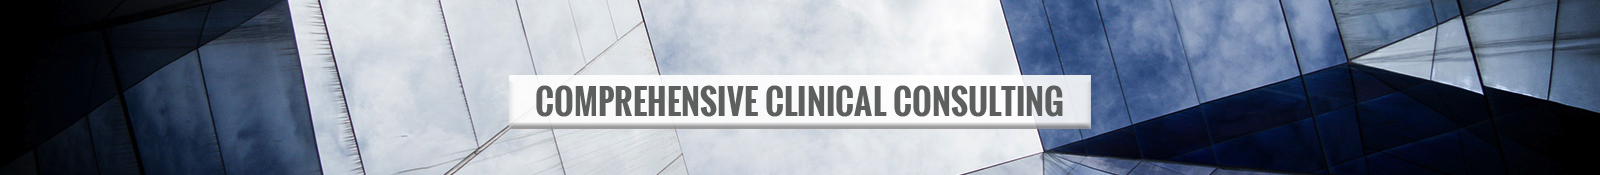 Comprehensive Clinical Consulting